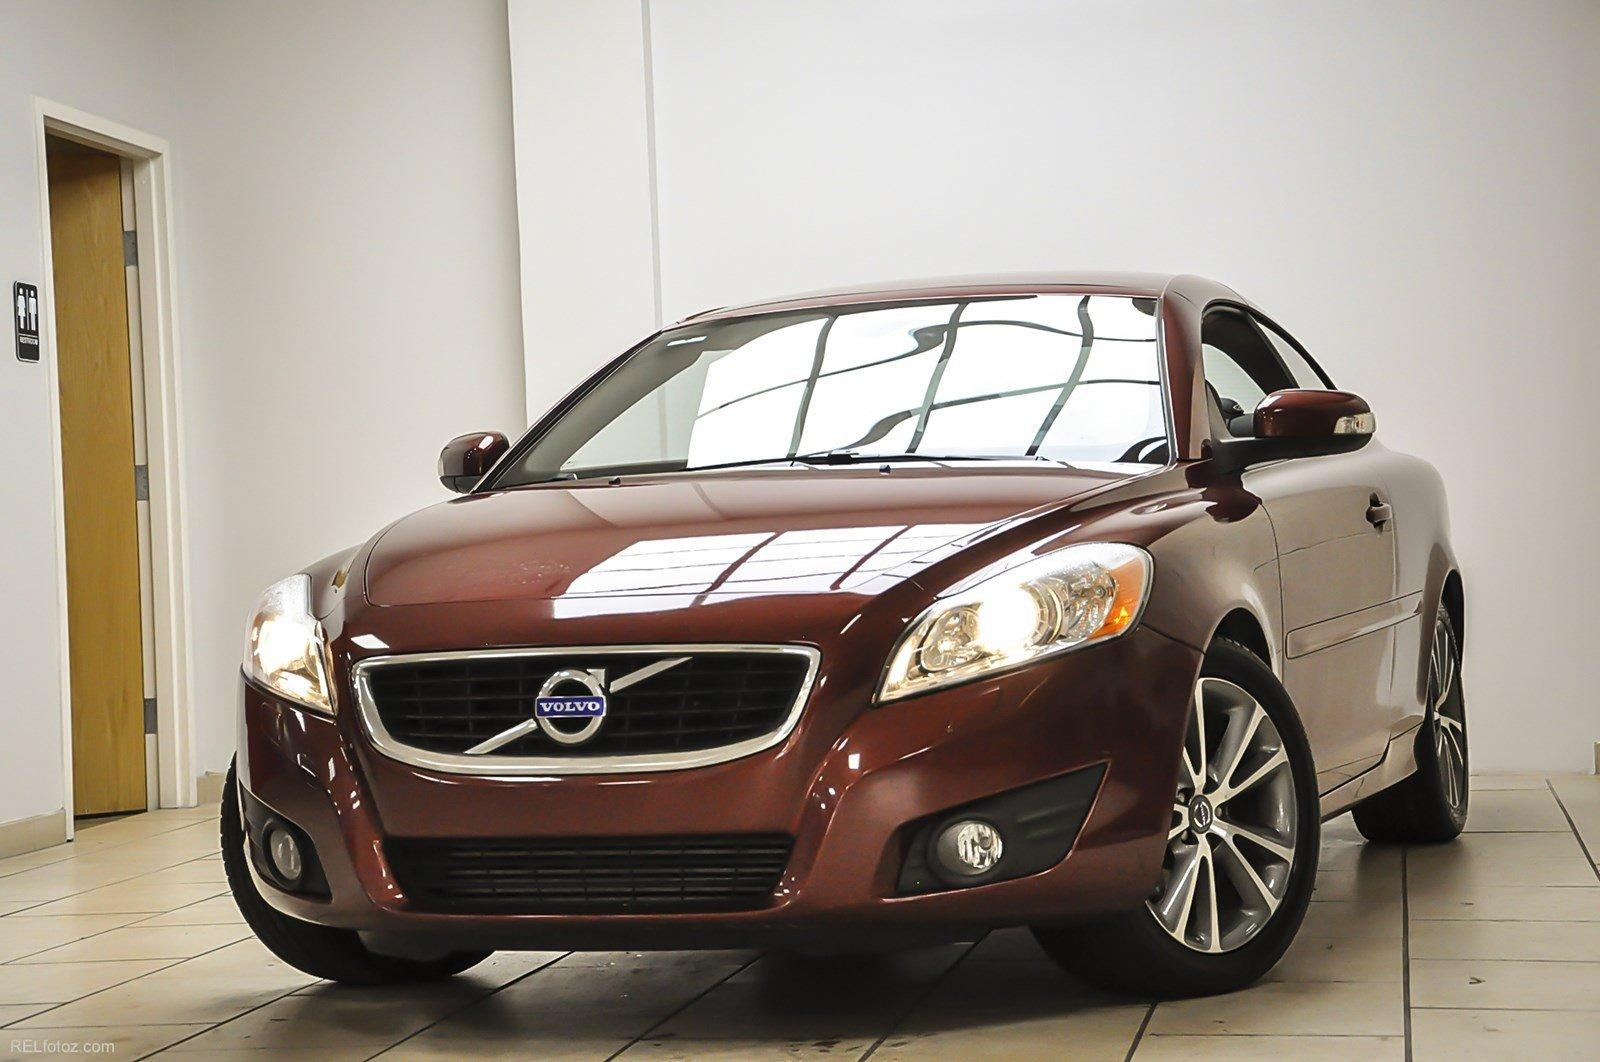 value used convertible price new sale paid car volvo prices